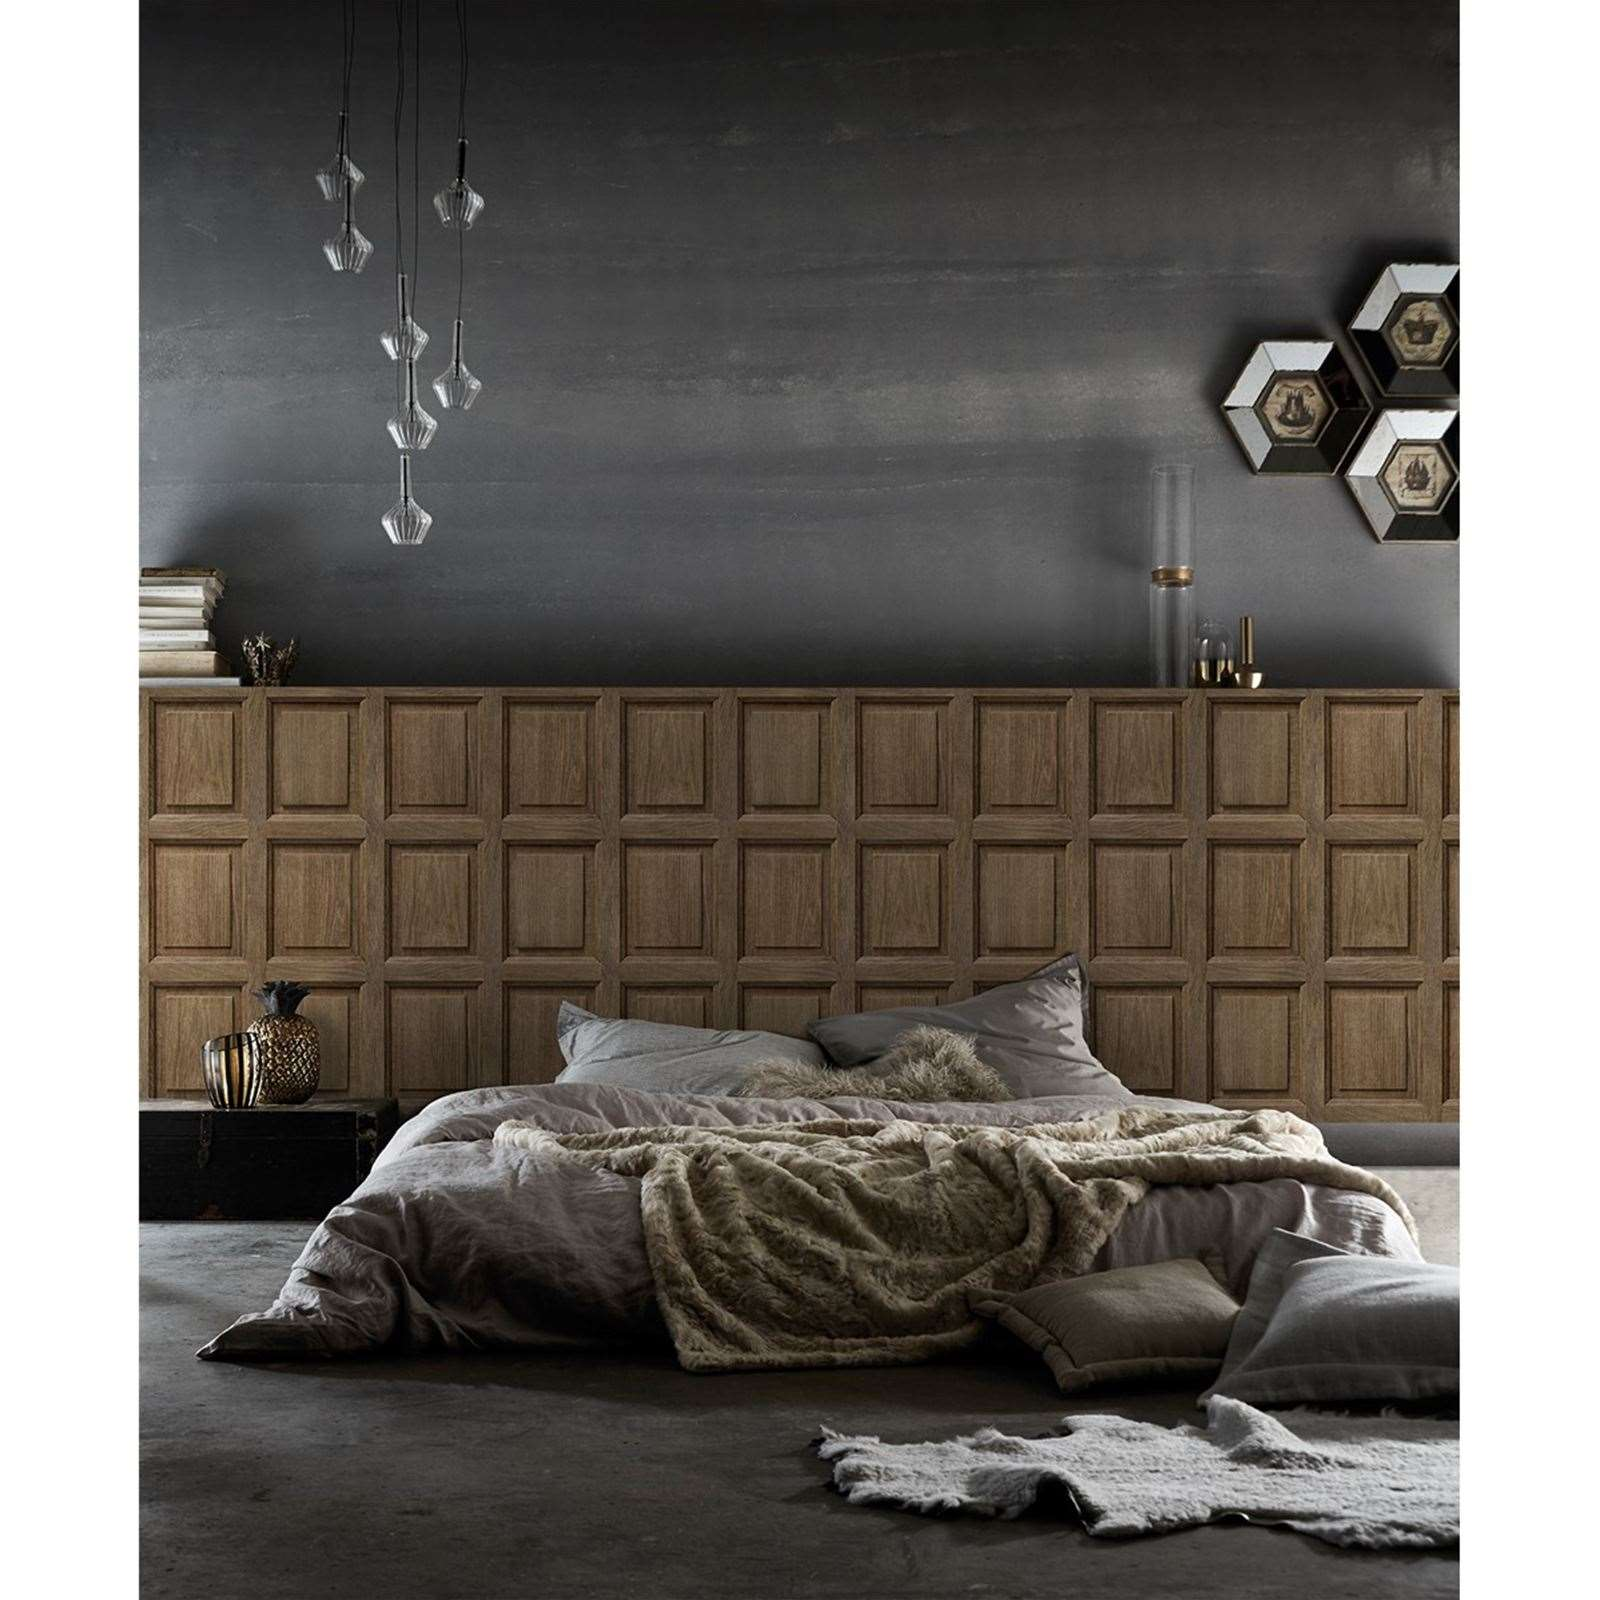 koziel boiserie anglaise en ch ne papier peint marron brandalley. Black Bedroom Furniture Sets. Home Design Ideas